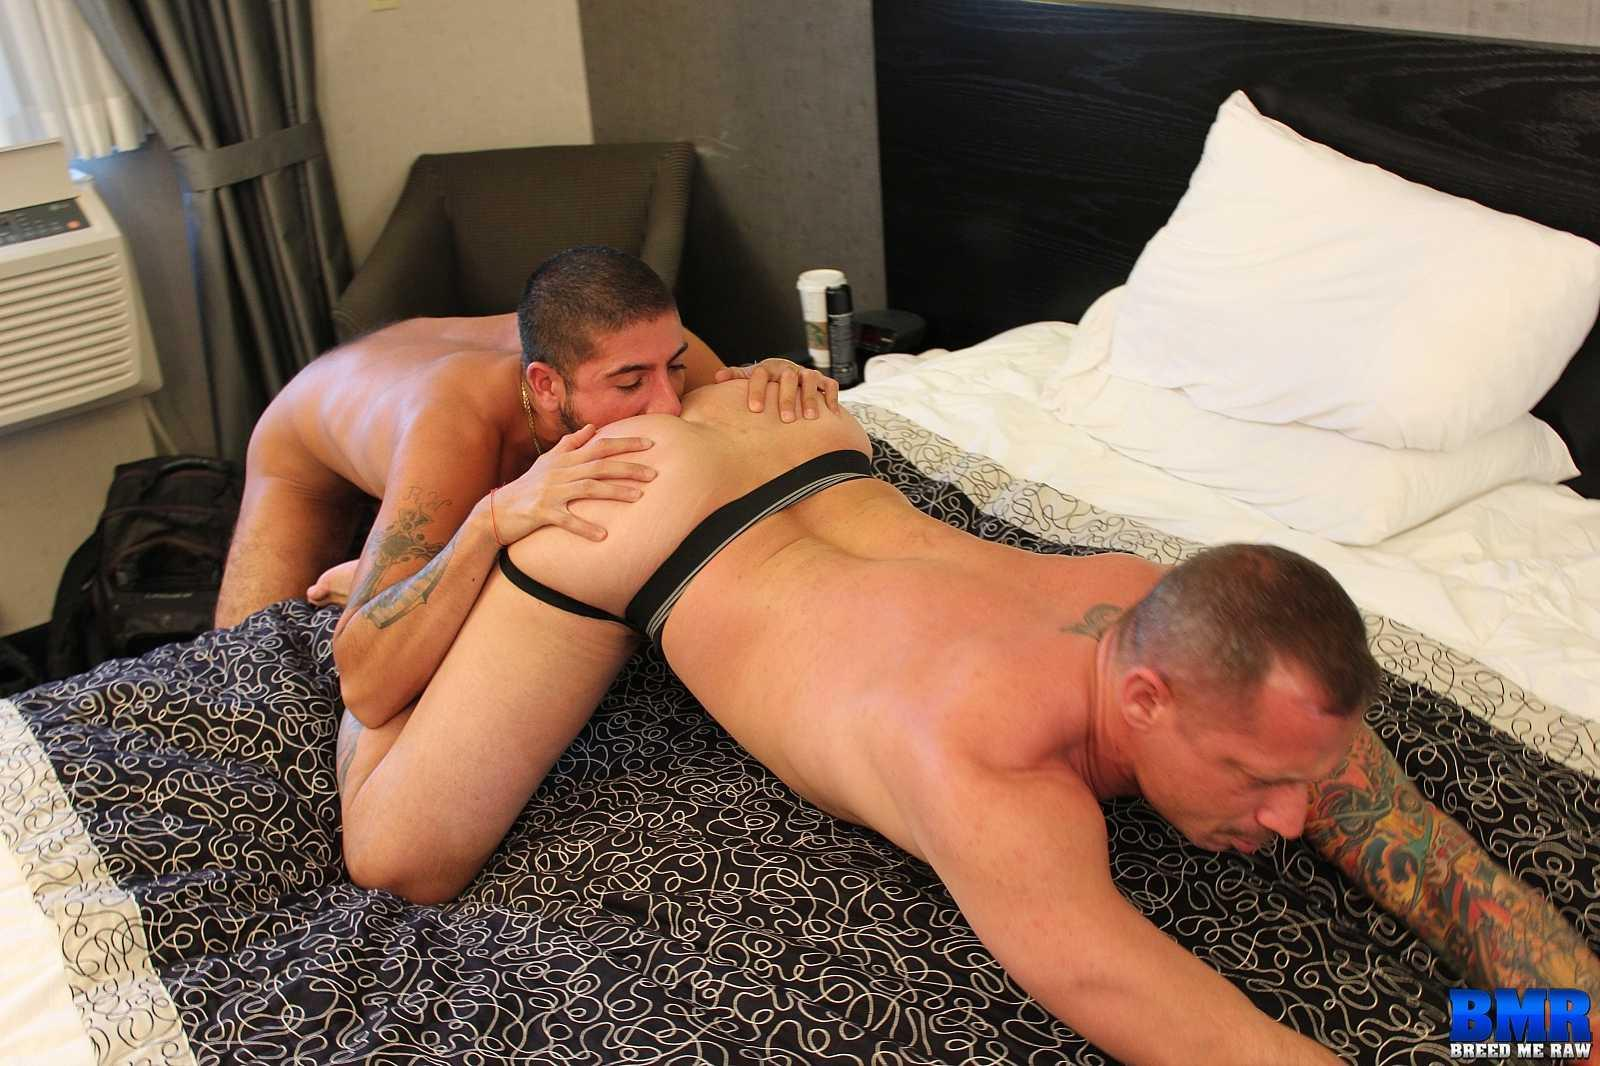 Breed-Me-Raw-Kyle-Savage-and-Sebastian-Rio-White-Daddy-Gets-Barebacked-By-Big-Uncut-Latino-Cock-Amateur-Gay-Porn-01 Jock Strap Daddy Takes A Big Latino Uncut Cock Bareback And Raw